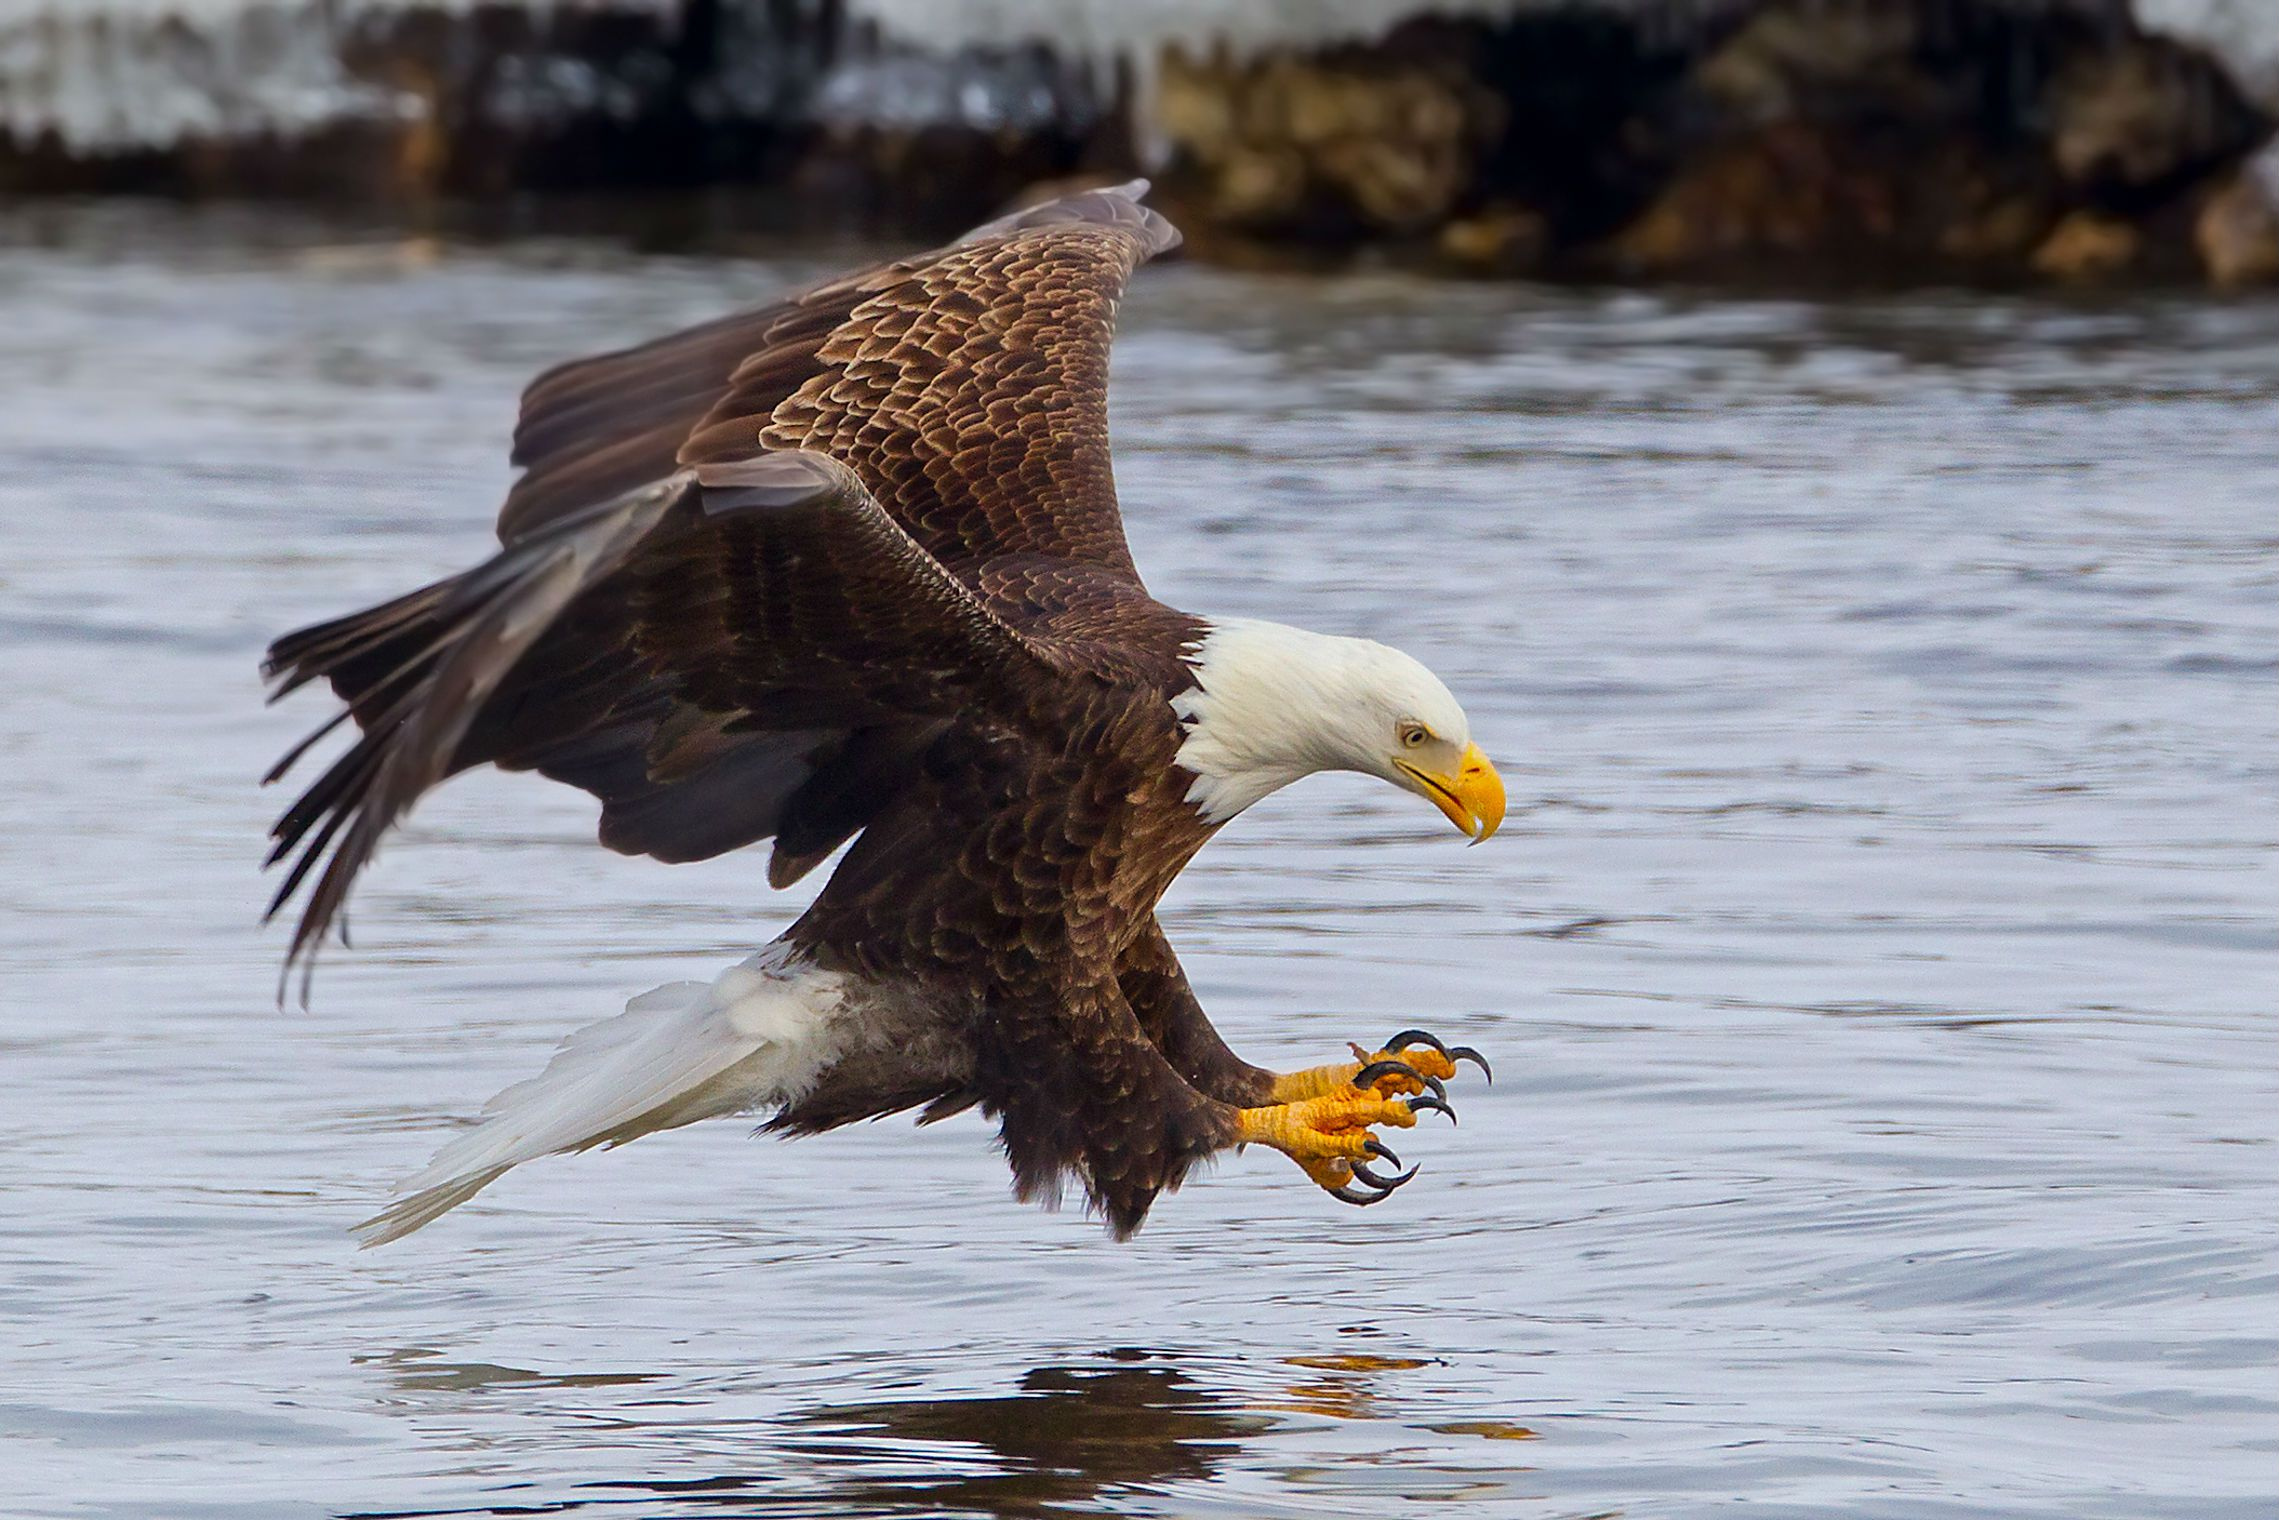 The Bald Eagle Bird Of The Free In The Land Of The Brave